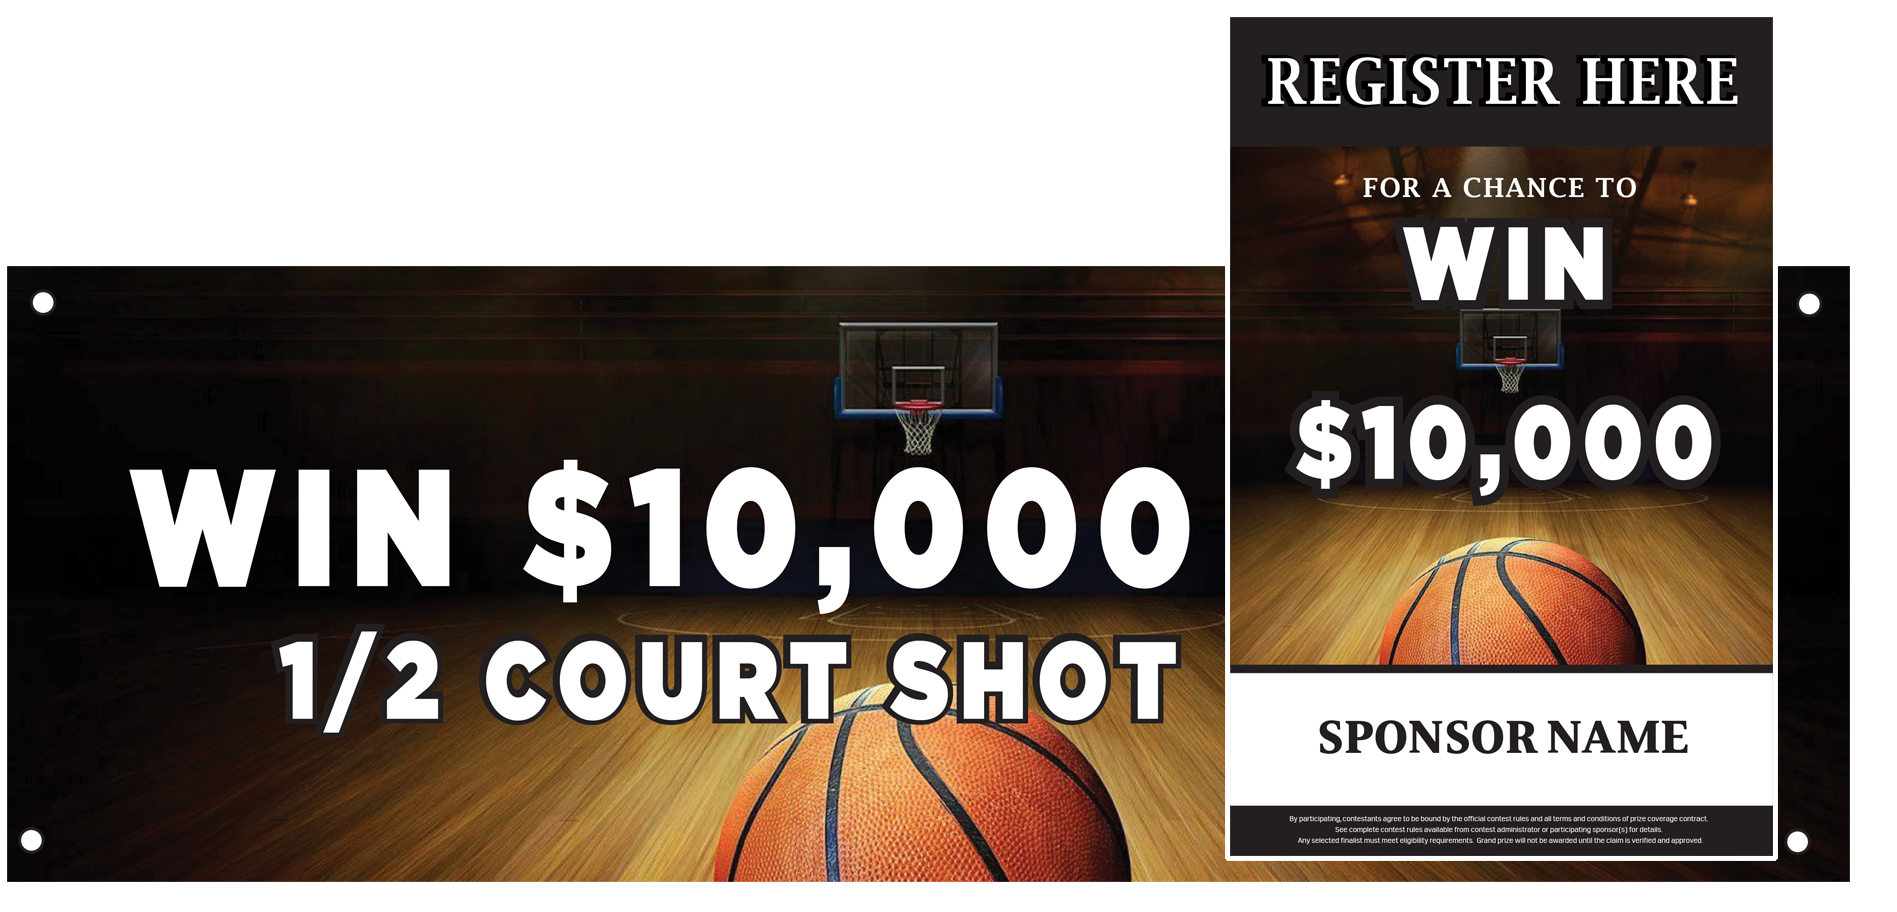 Basketball Promotions - Grand Prize Promotions